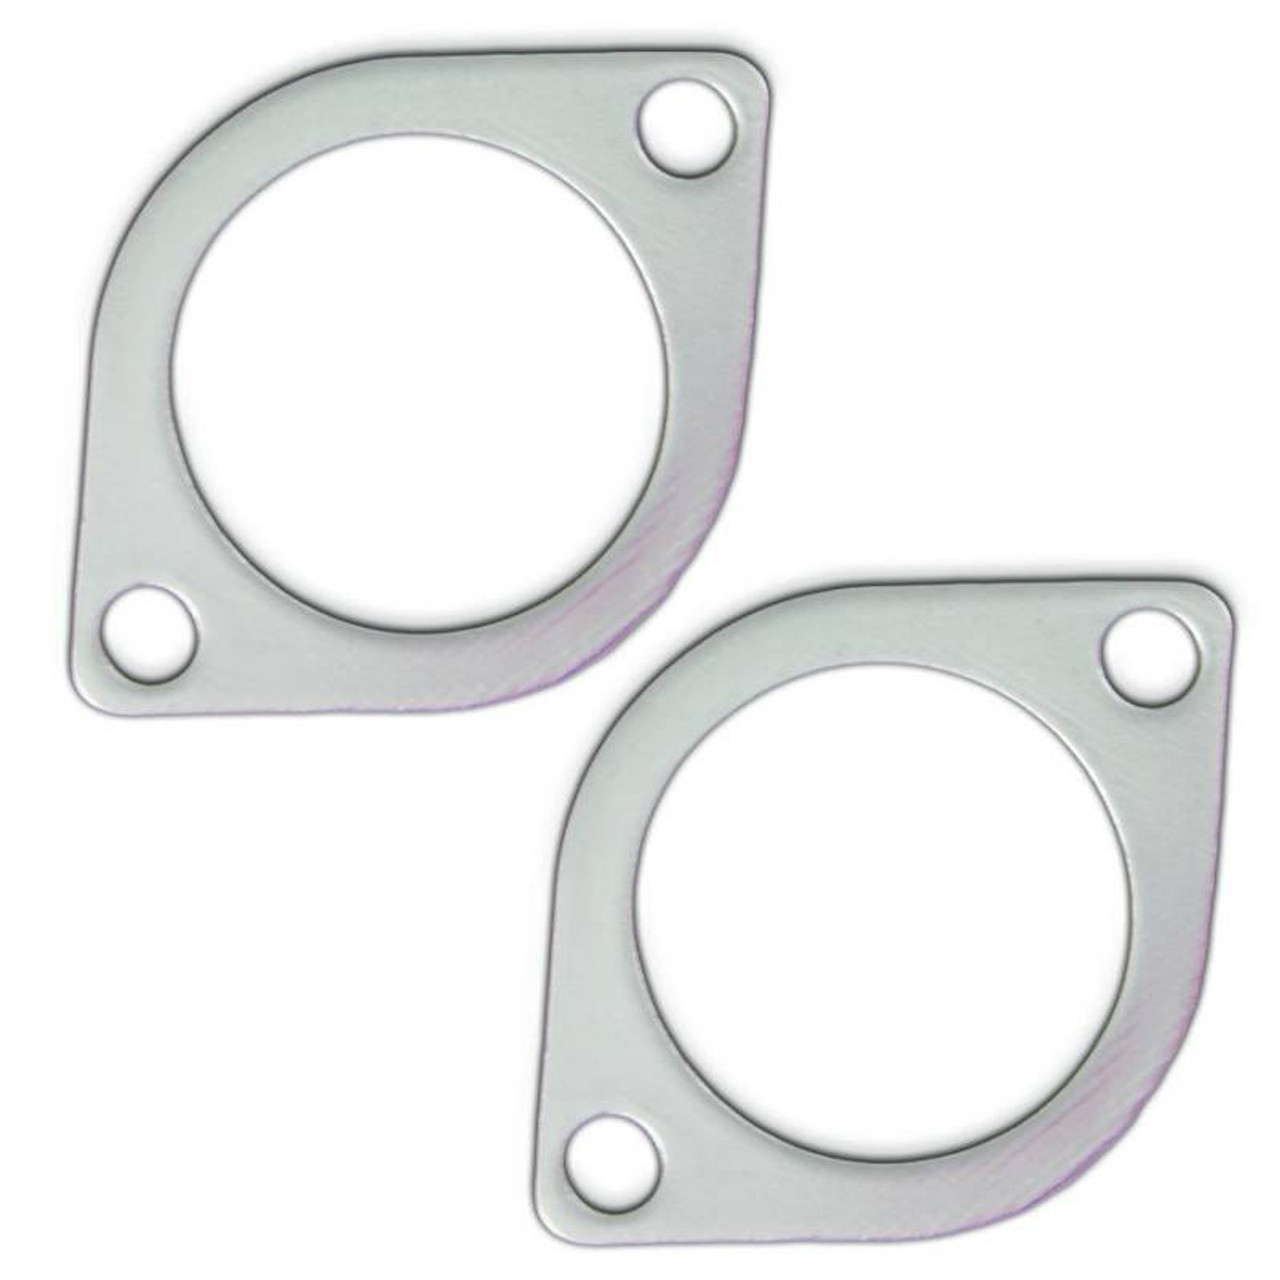 Remflex 8036 Exhaust Gasket Exhaust & Emissions Replacement Parts